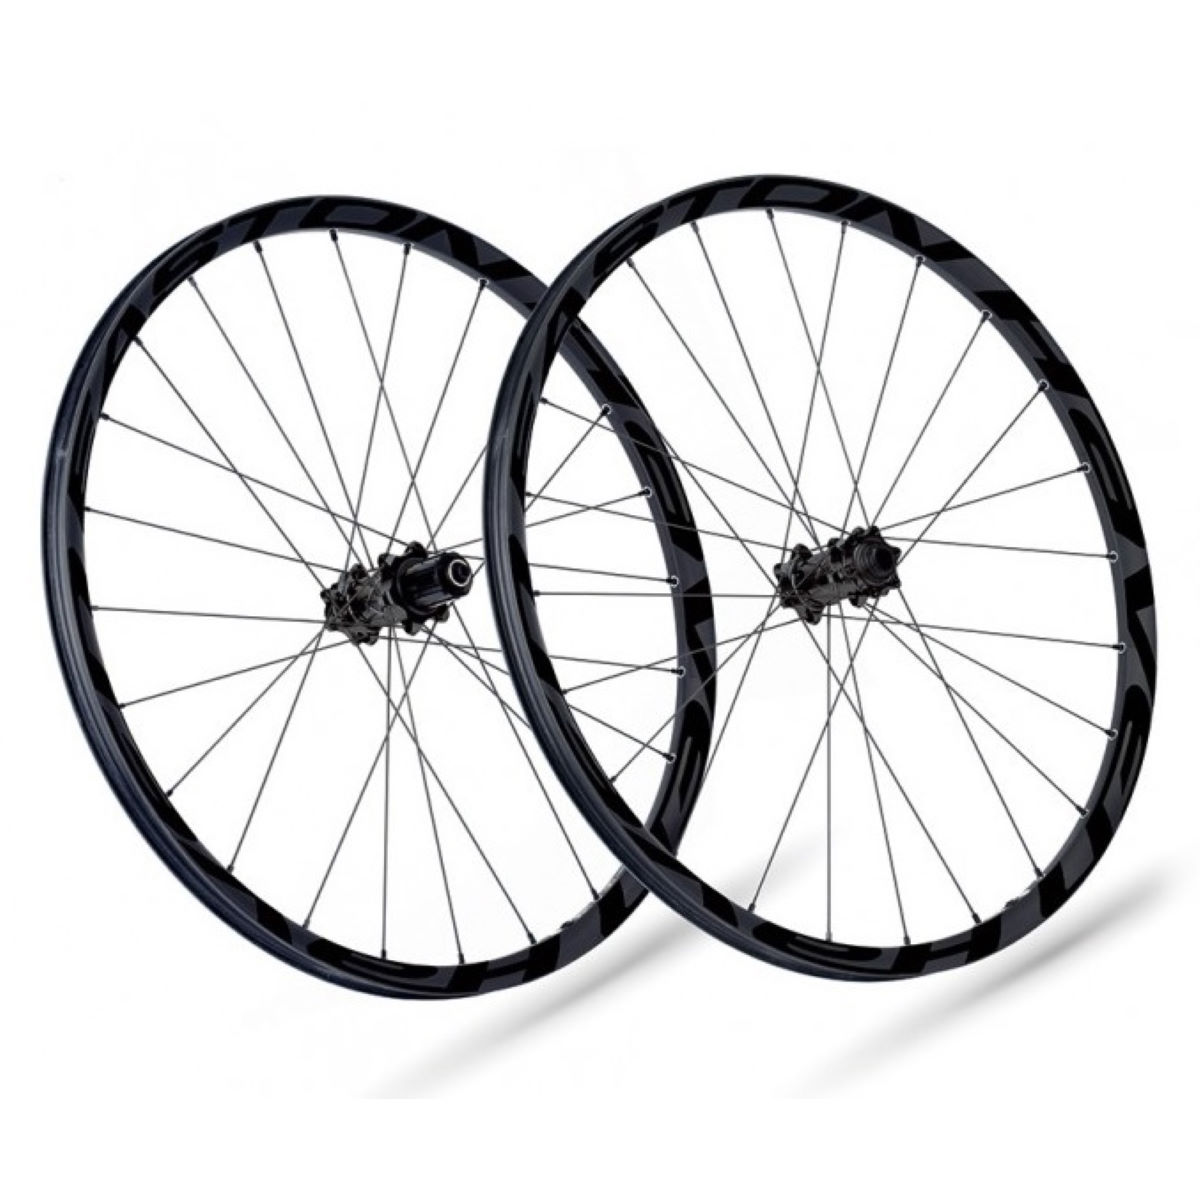 Roue avant VTT Easton Haven 29 pouces (alliage) - 29'' n/a 20mm Axle -